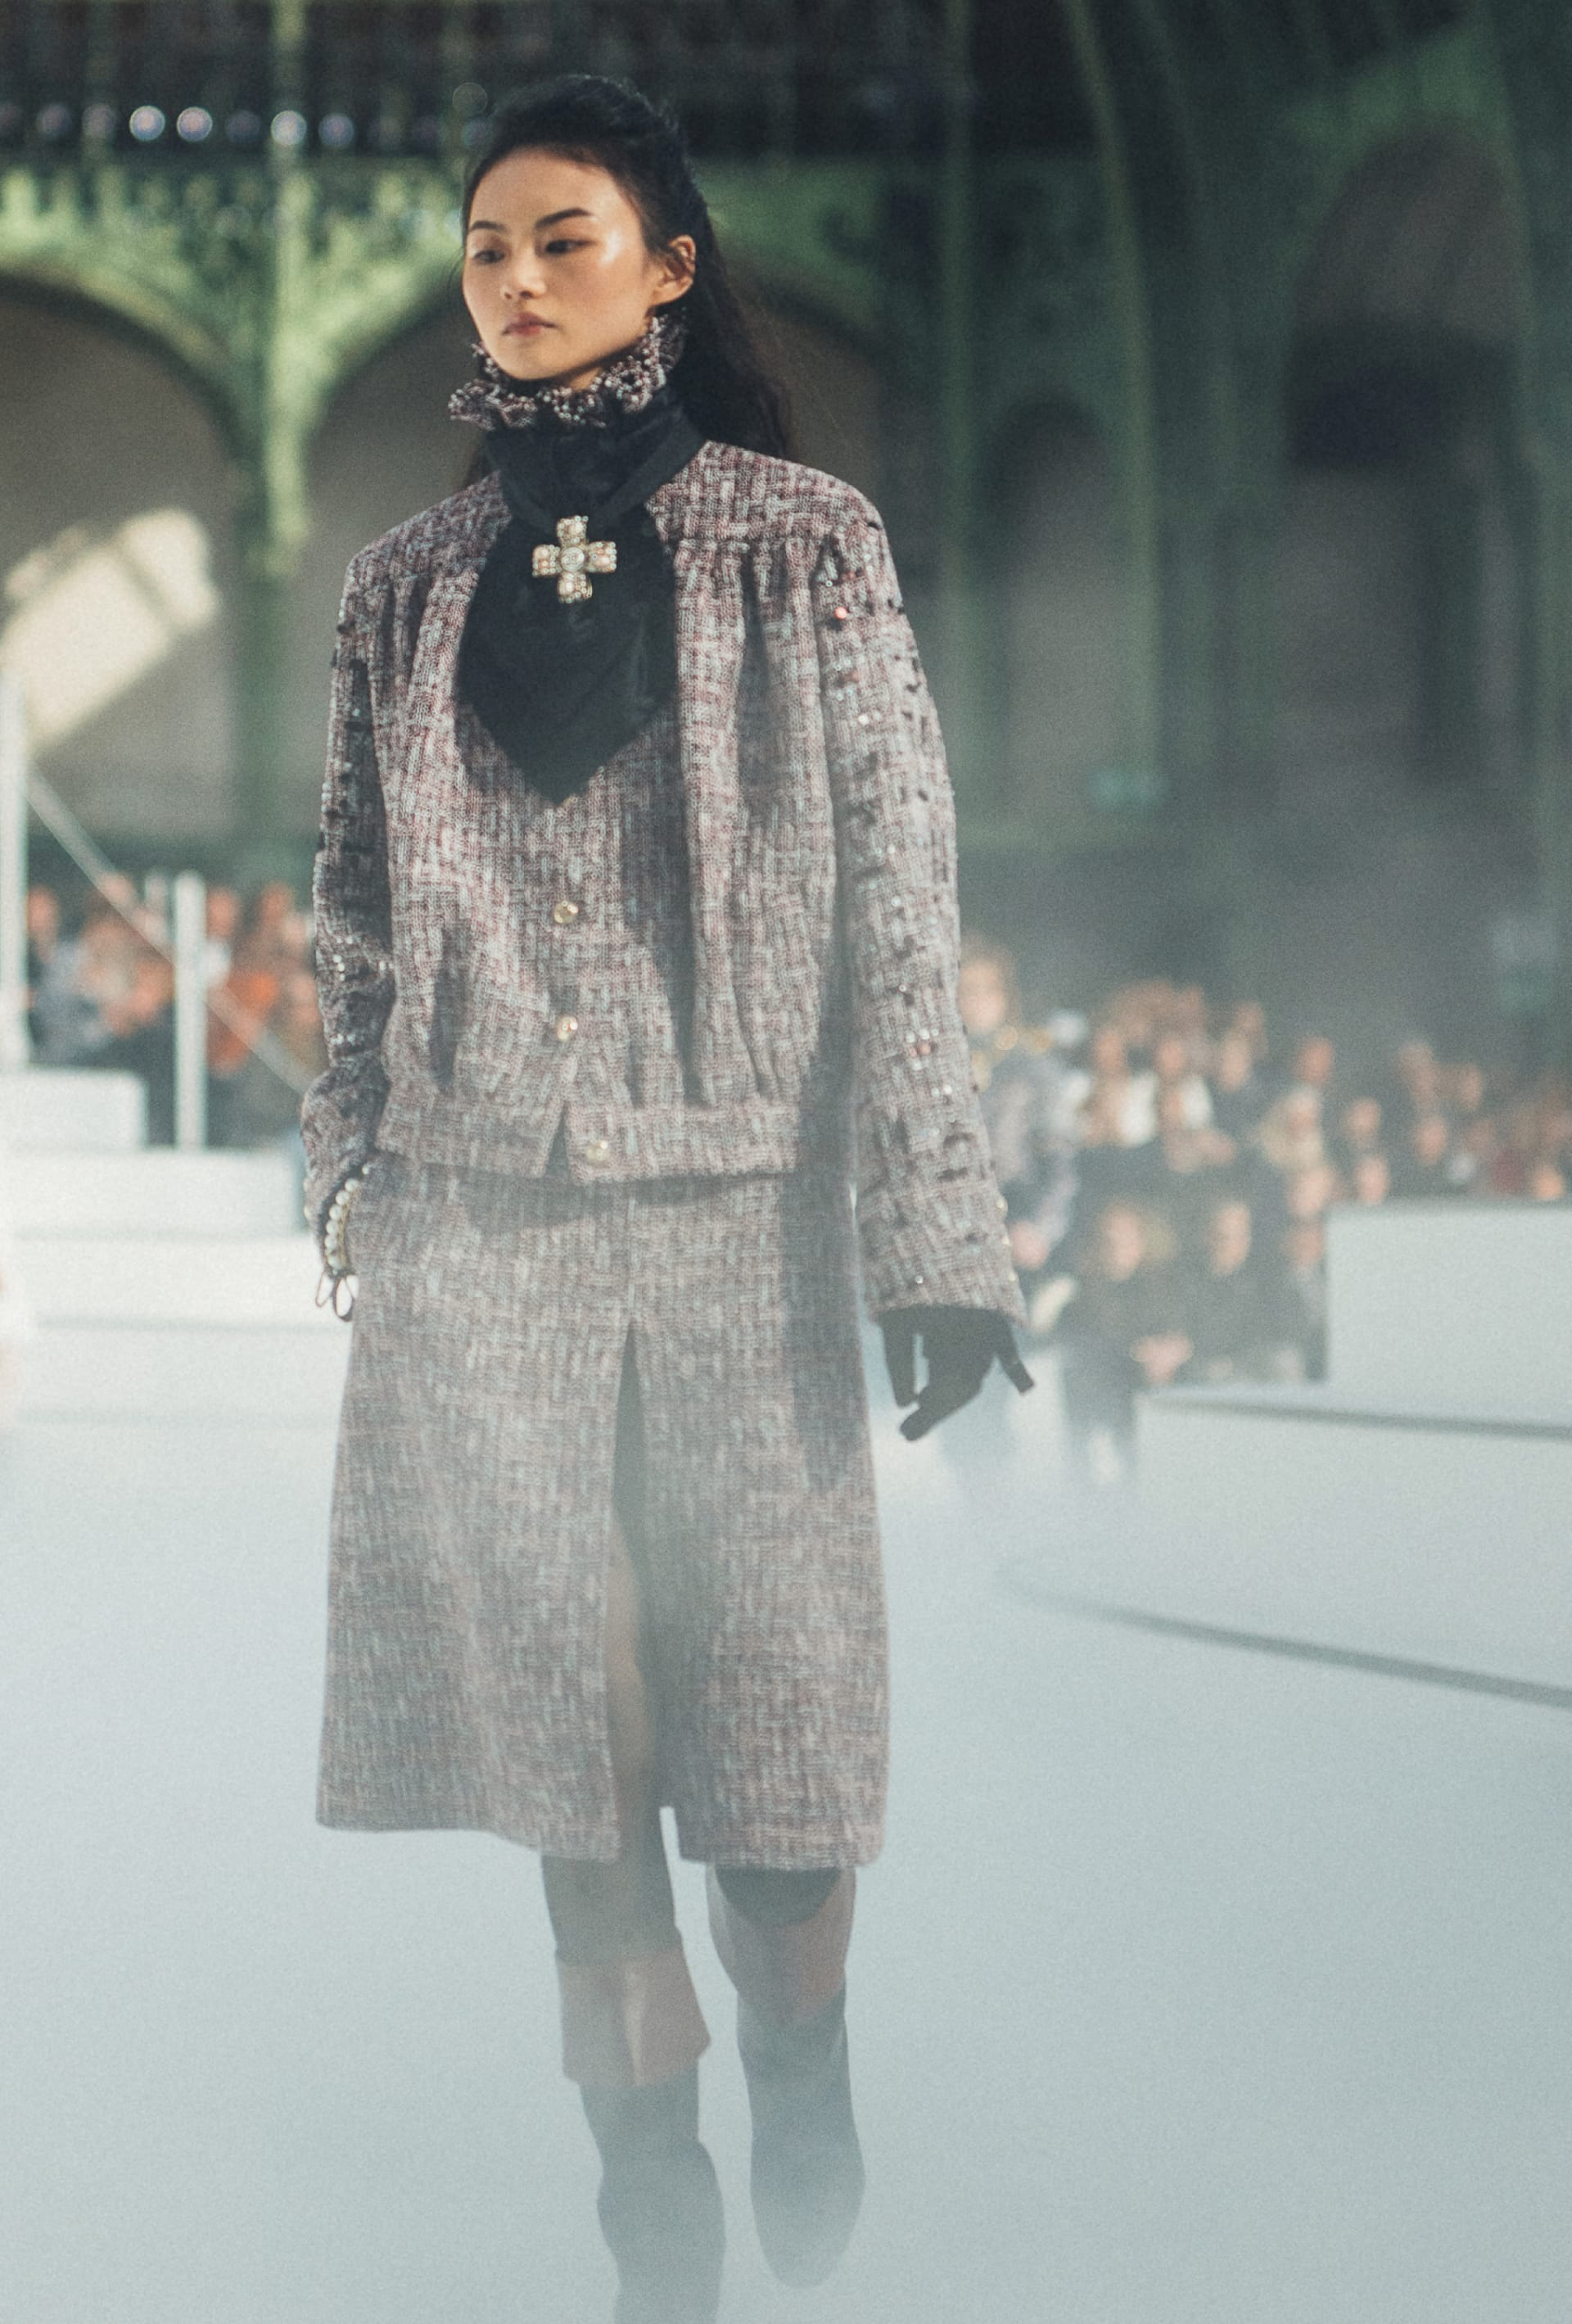 Additional image 2 - Look  31 -  - Fall-Winter 2020/21